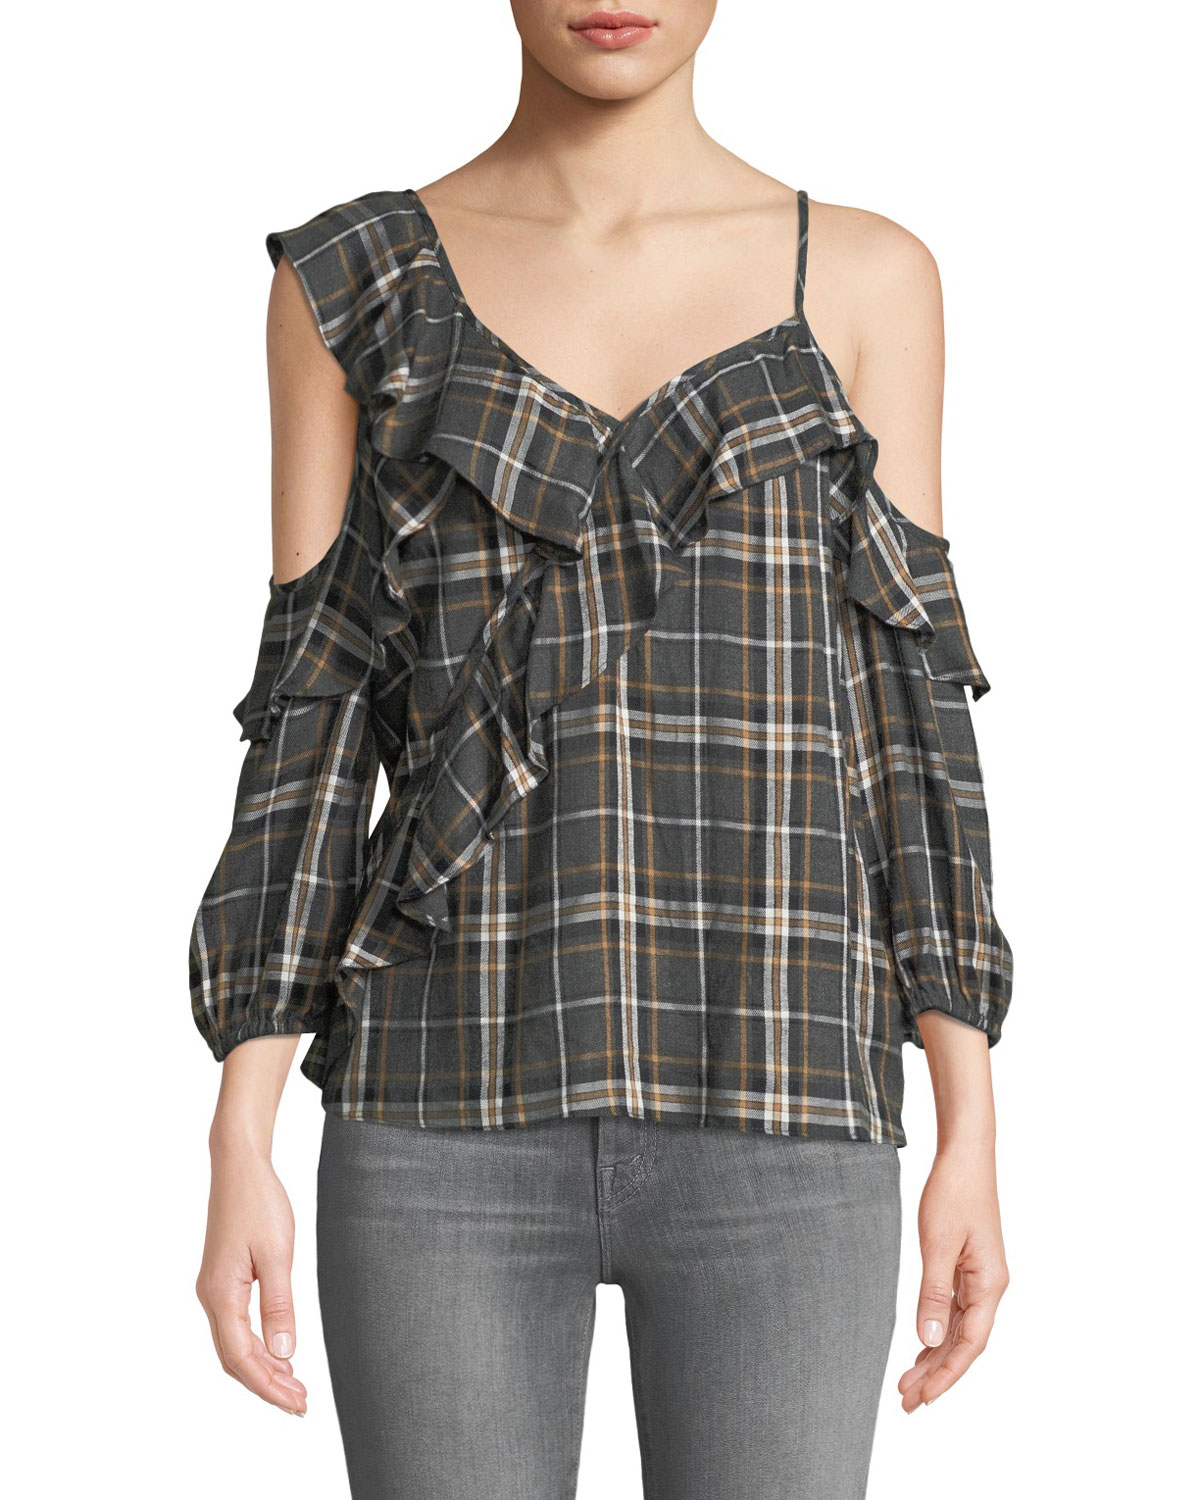 Cross Country Plaid Ruffle Cold-Shoulder Top in Anthracite